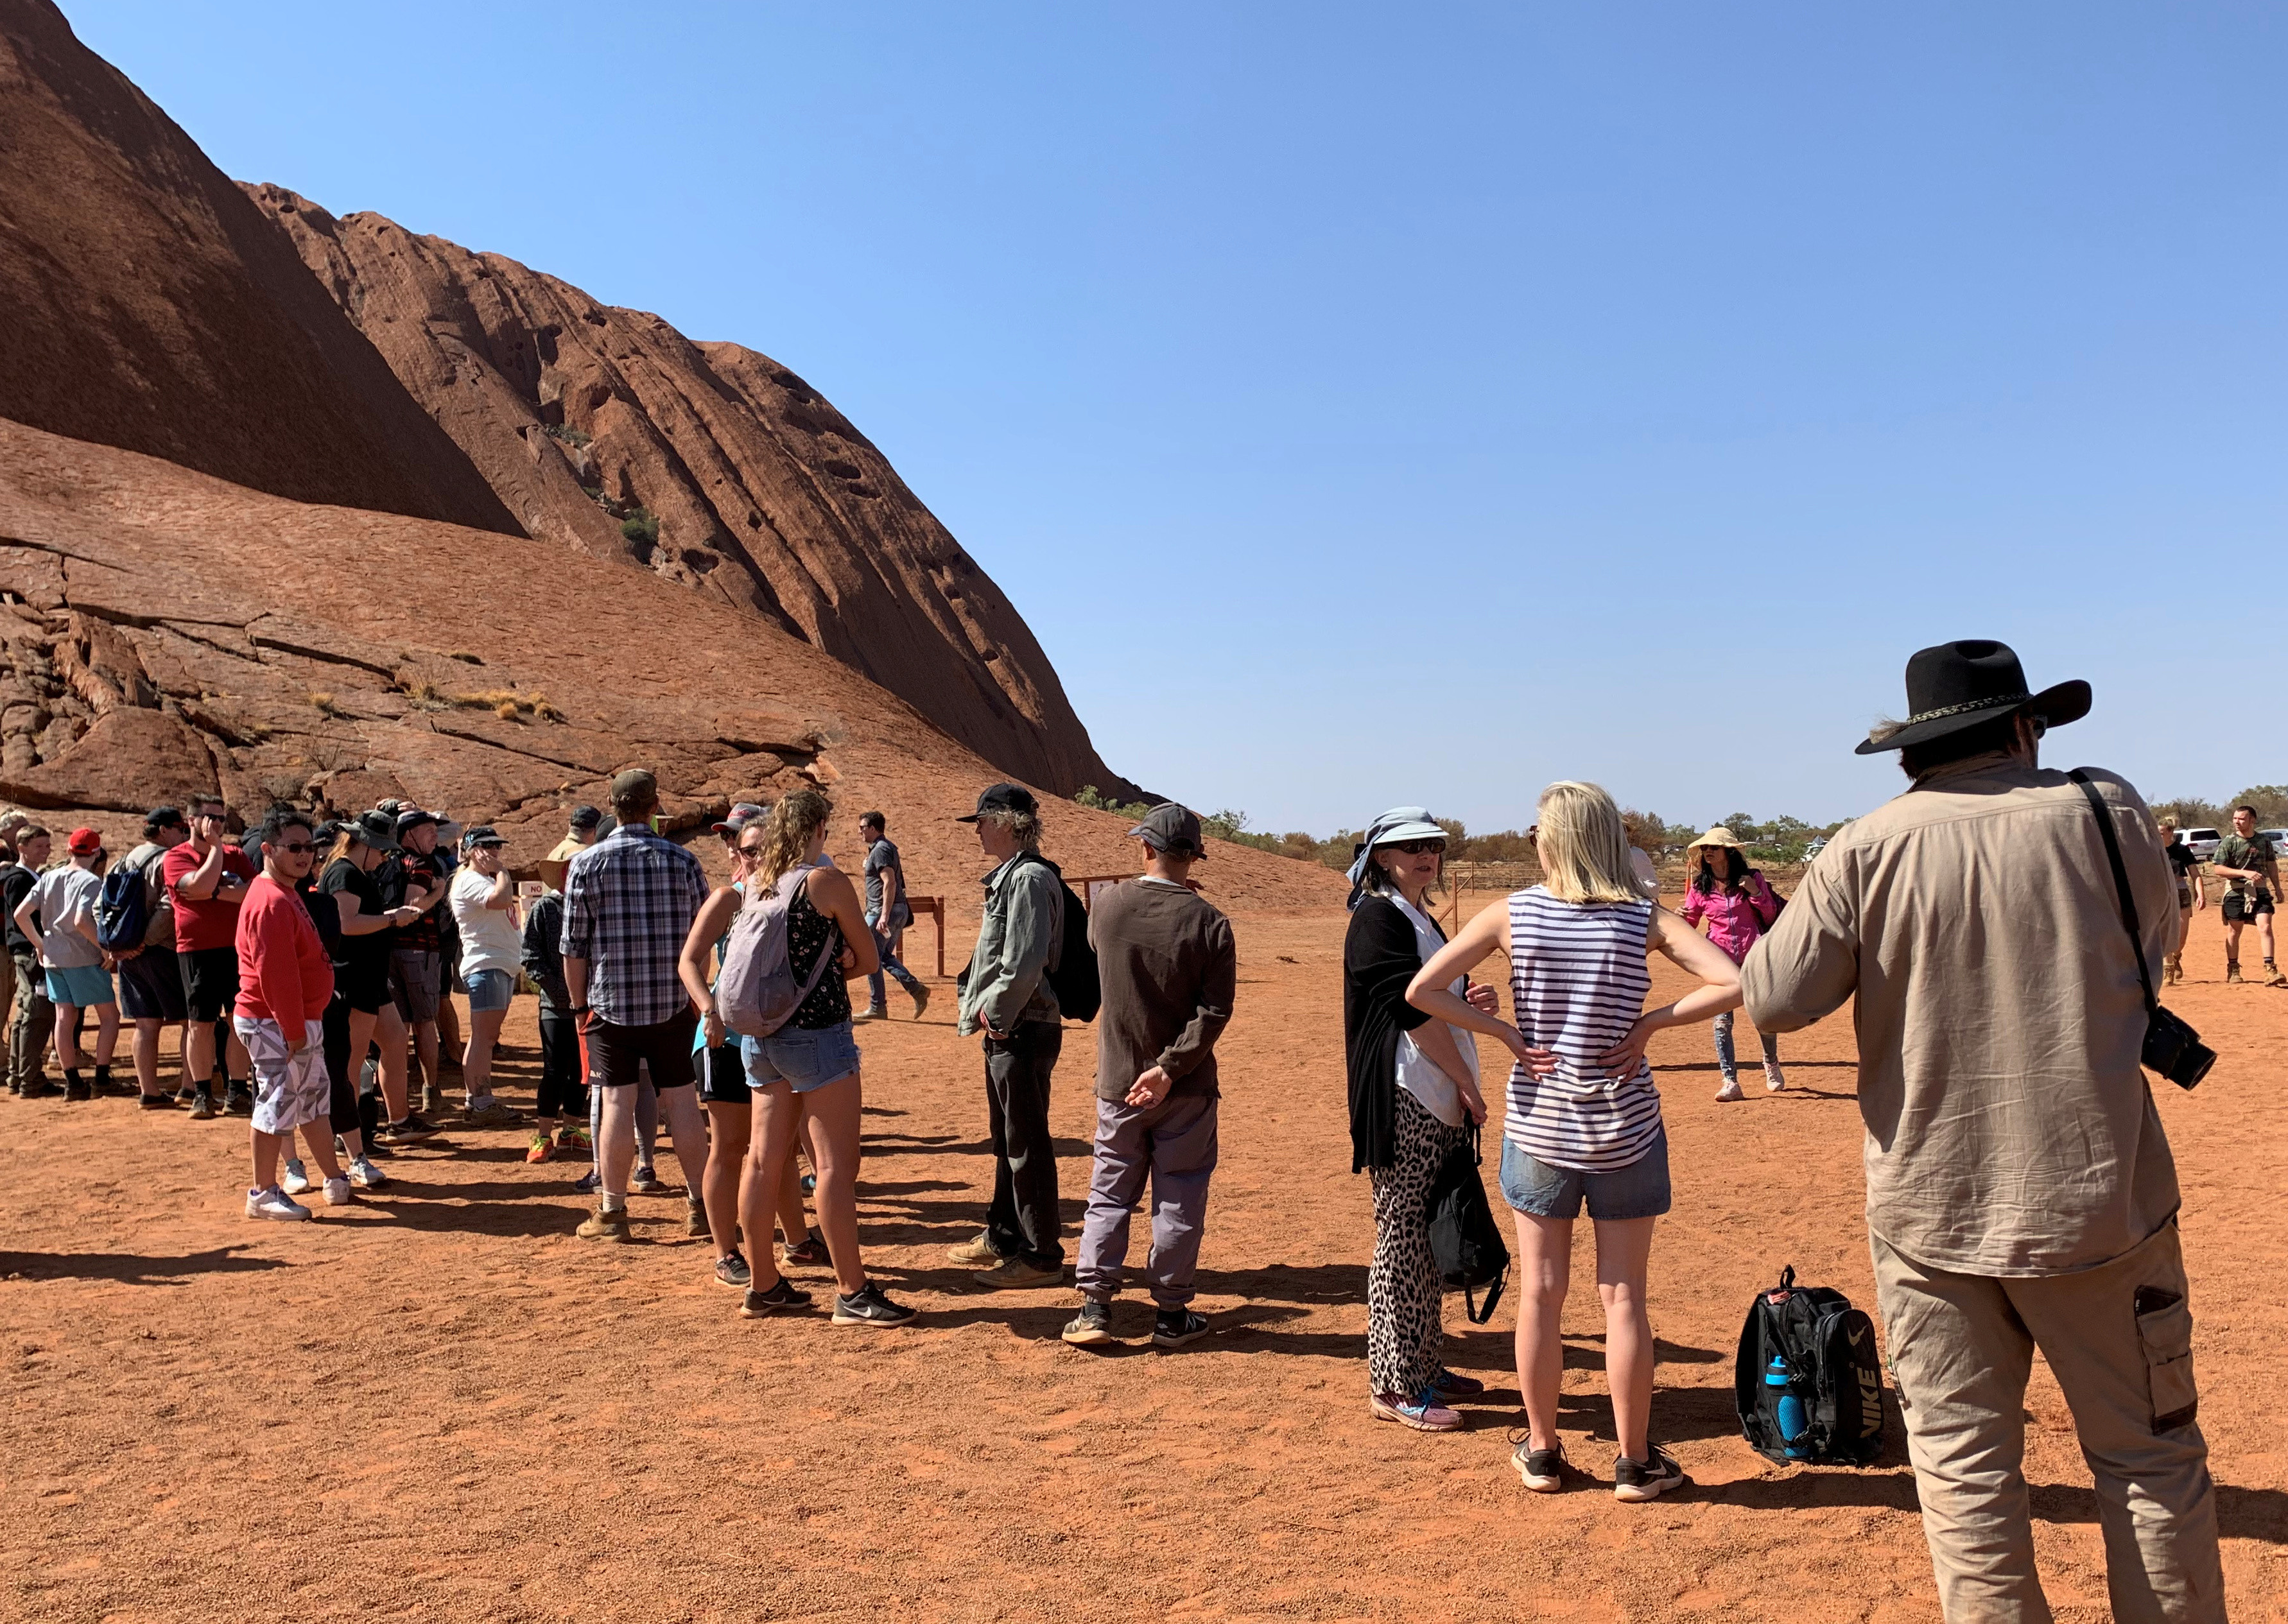 People line up to climb Uluru, formerly known as Ayers Rock, the day before a permanent ban on climbing the monolith takes effect following a decades-long fight by indigenous people to close the trek, near Yulara, Australia, October 25, 2019.